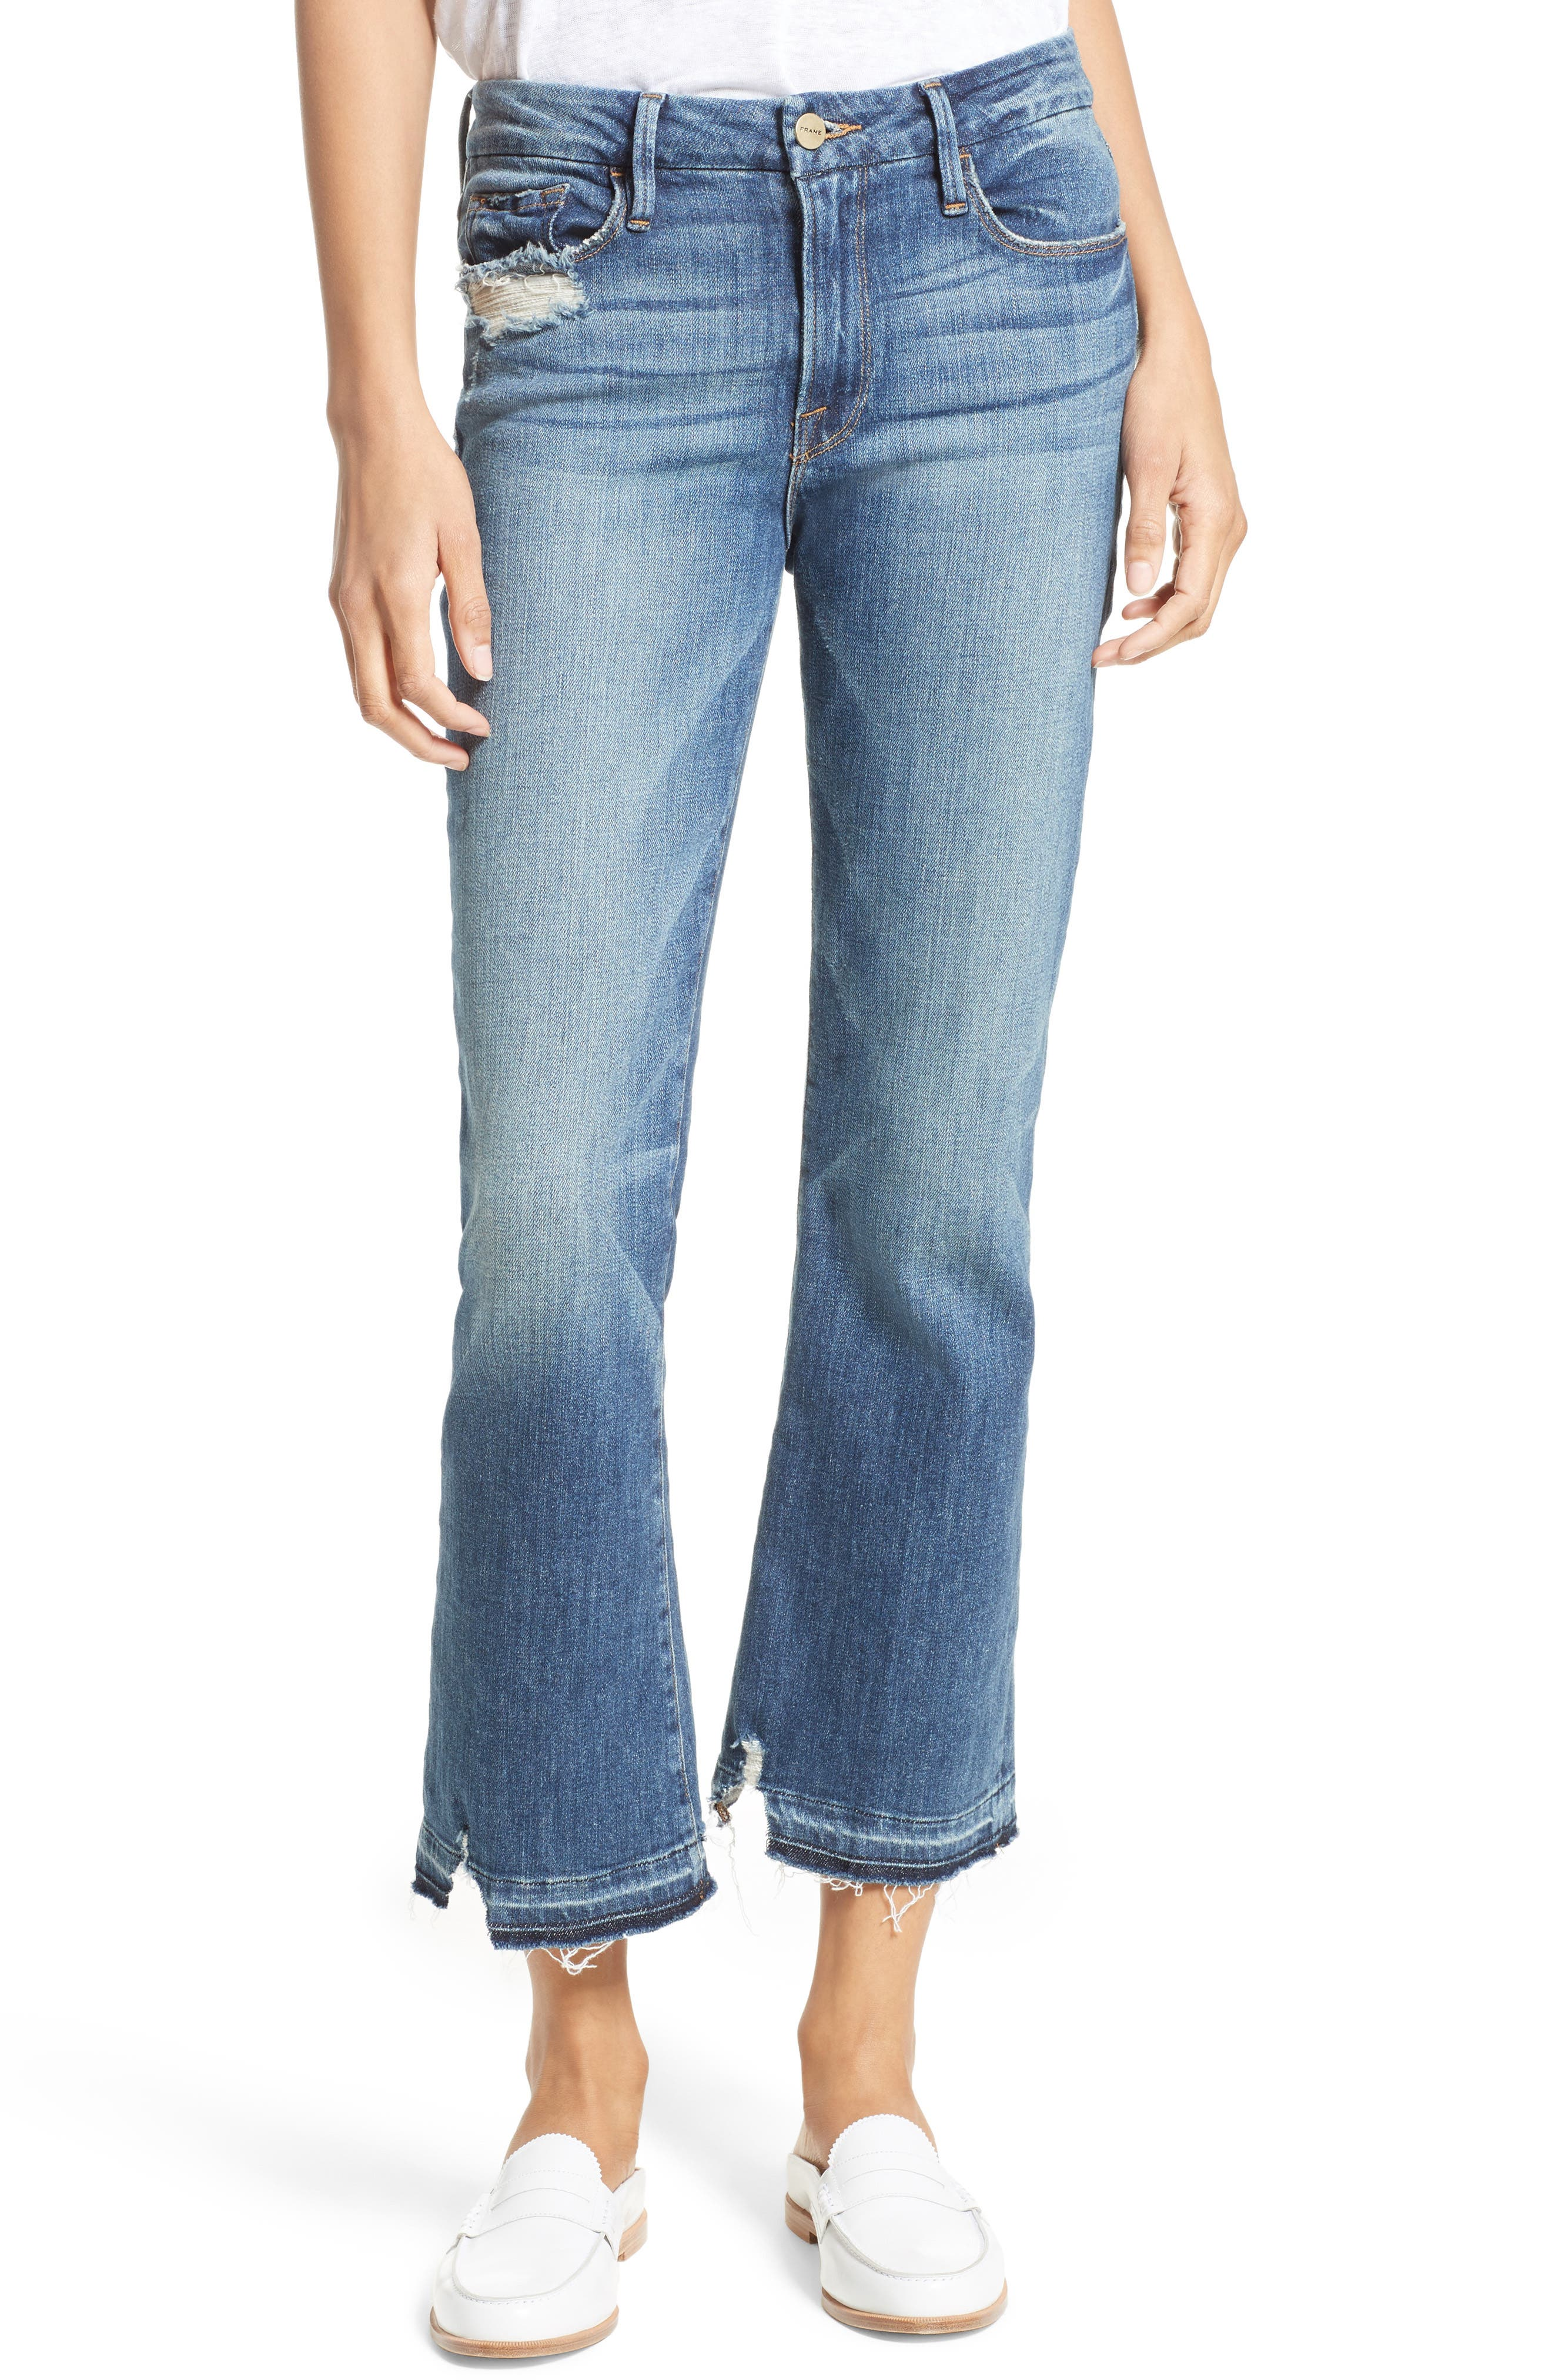 Alternate Image 1 Selected - FRAME Released Hem Le Crop Mini Boot Jeans (Roberts)